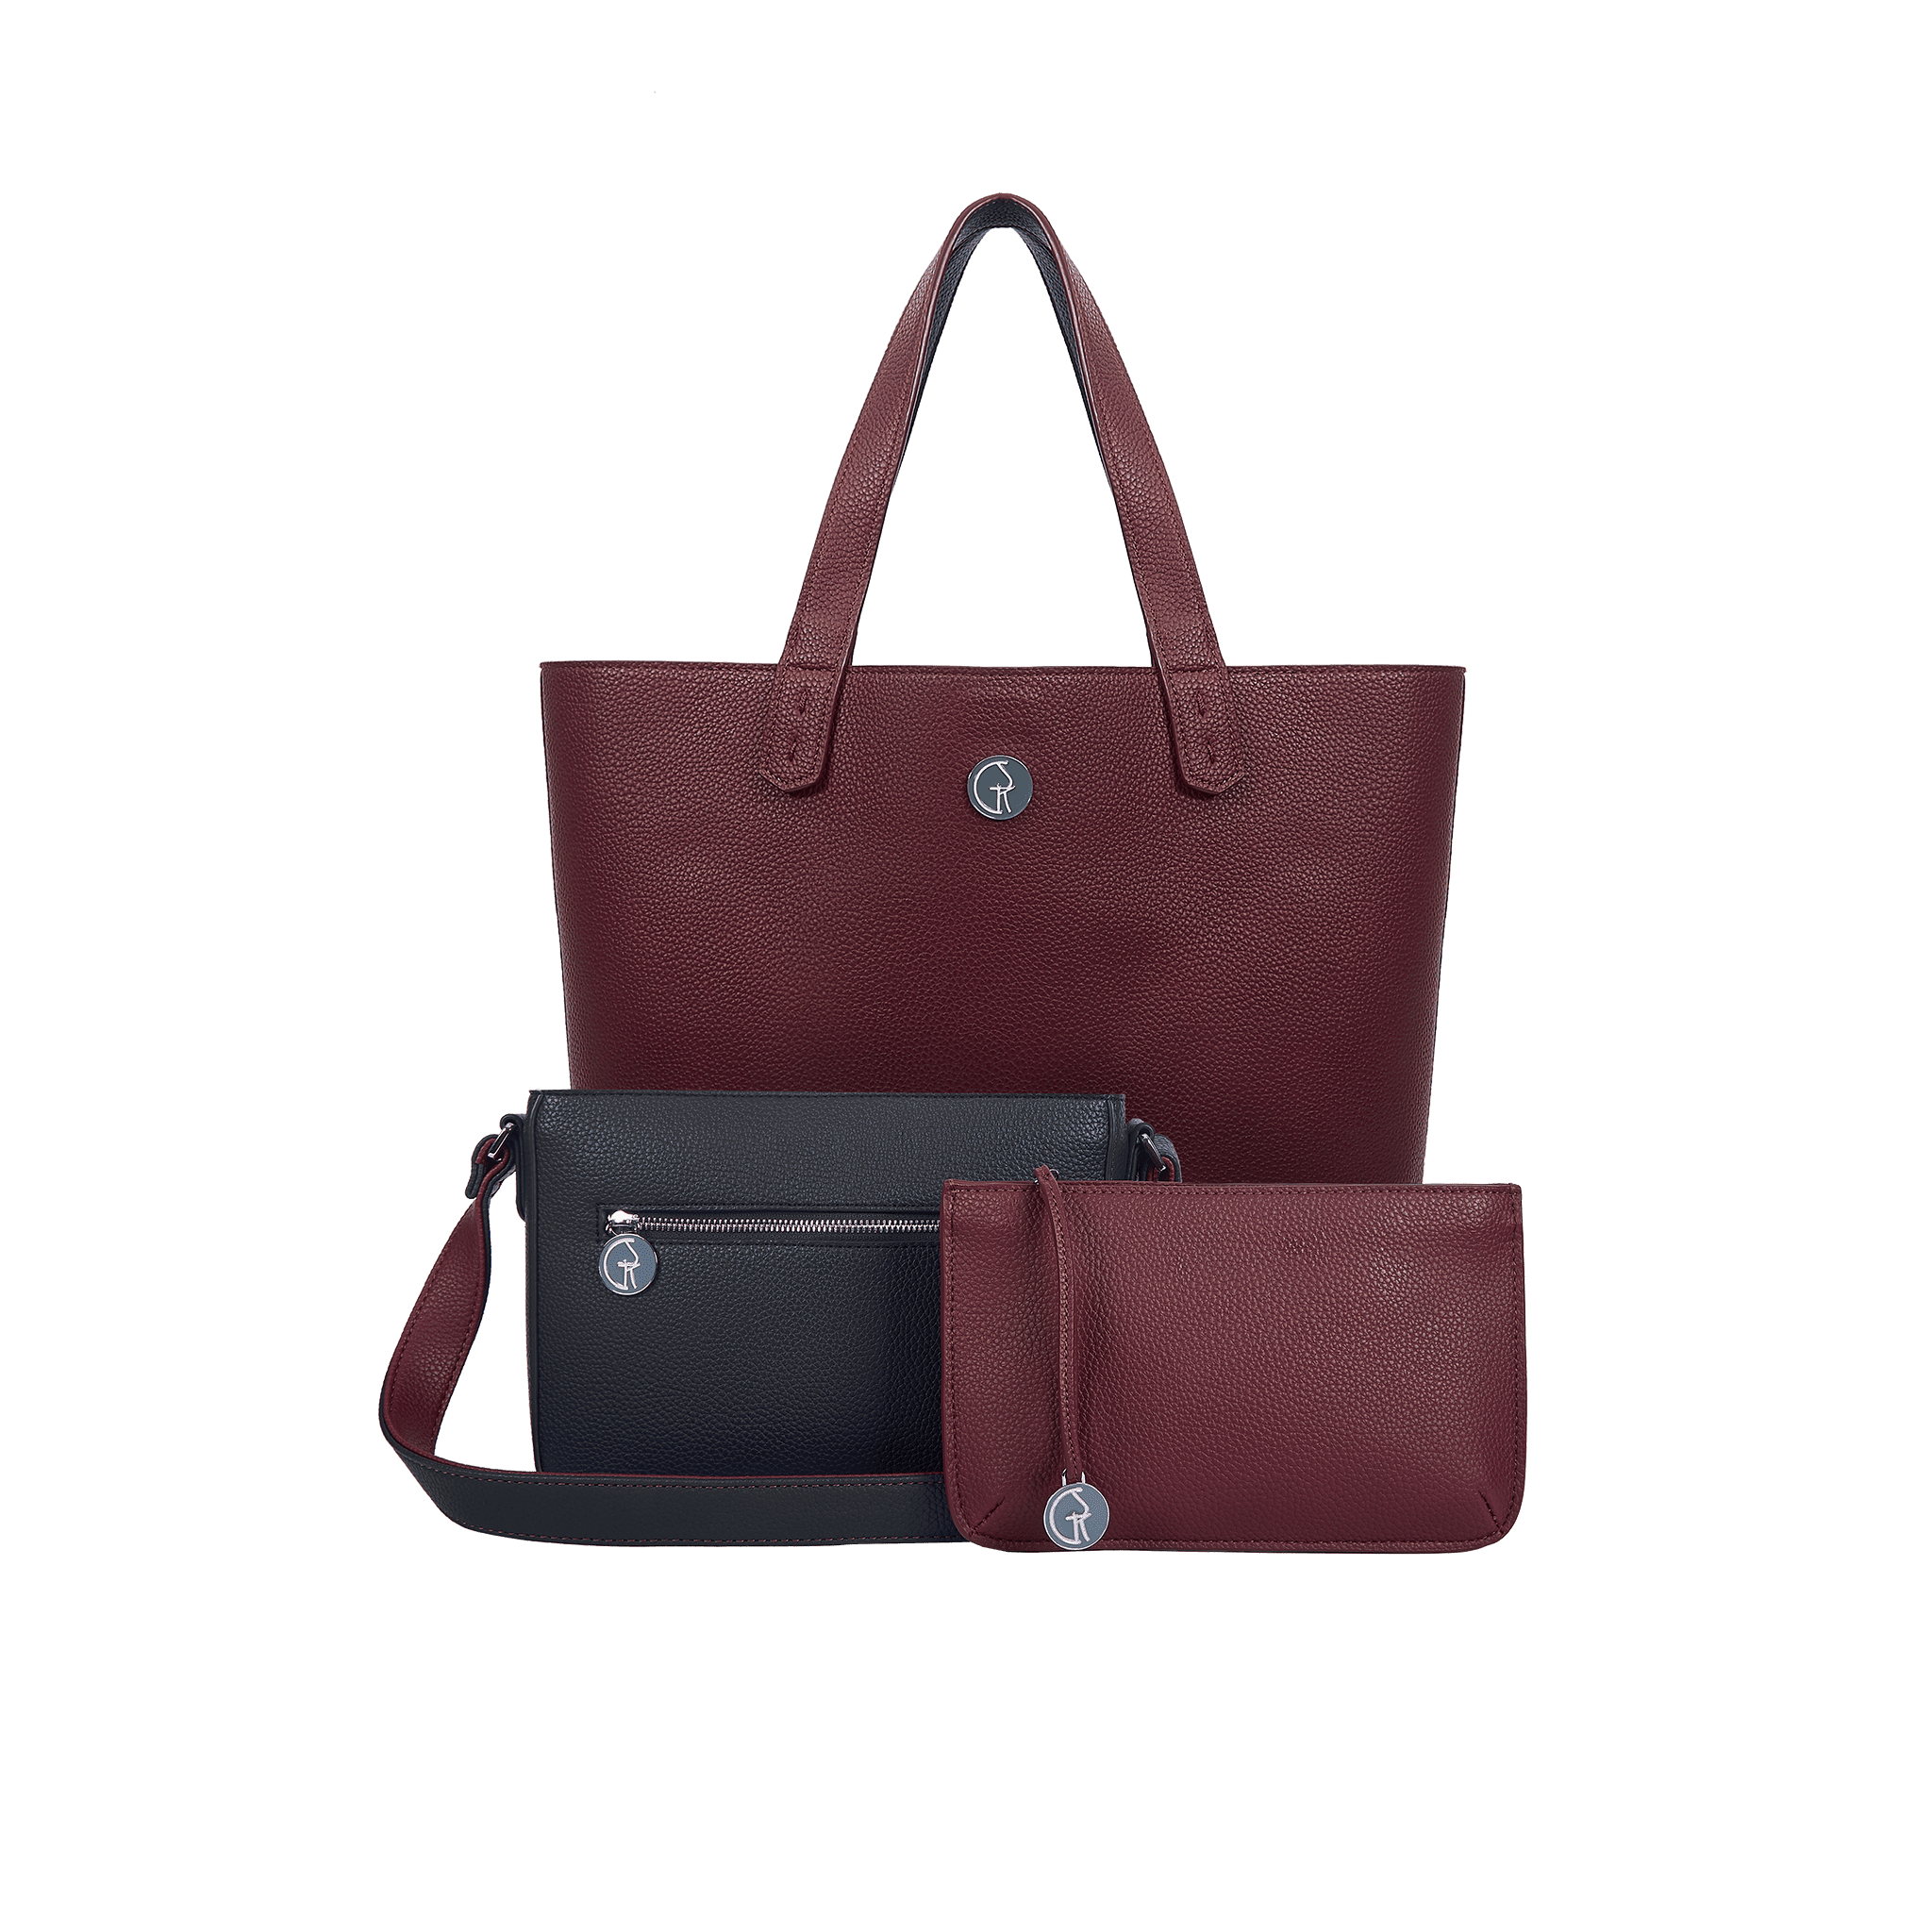 The Morphbag by GSK 3 Vegan Leather Bags in 1   Blackberry & Currant